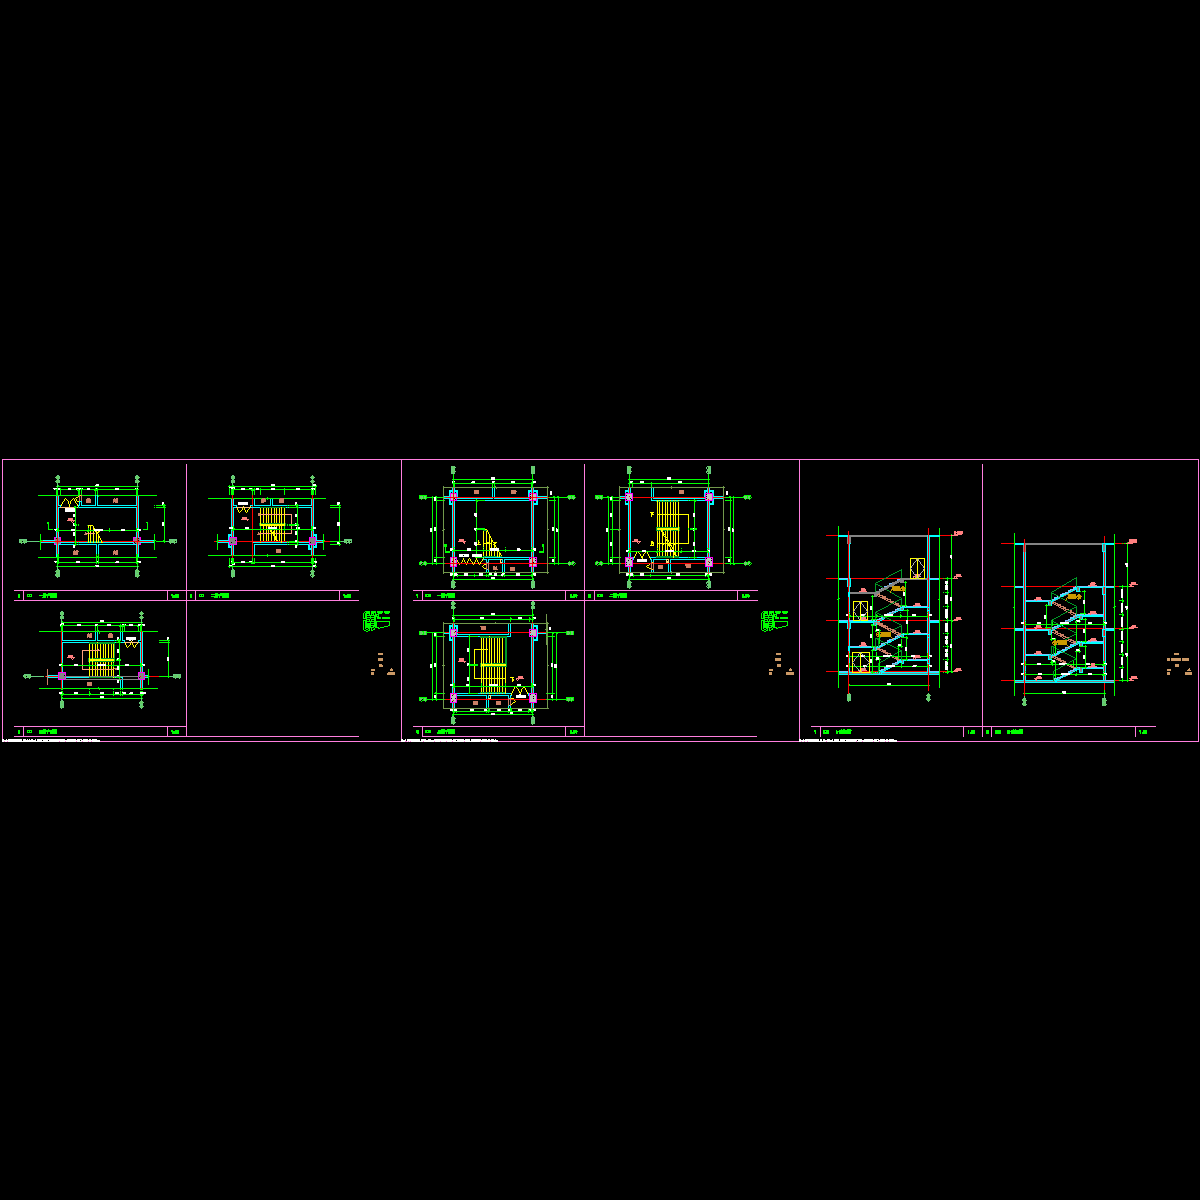 arch-s09-stair.dwg